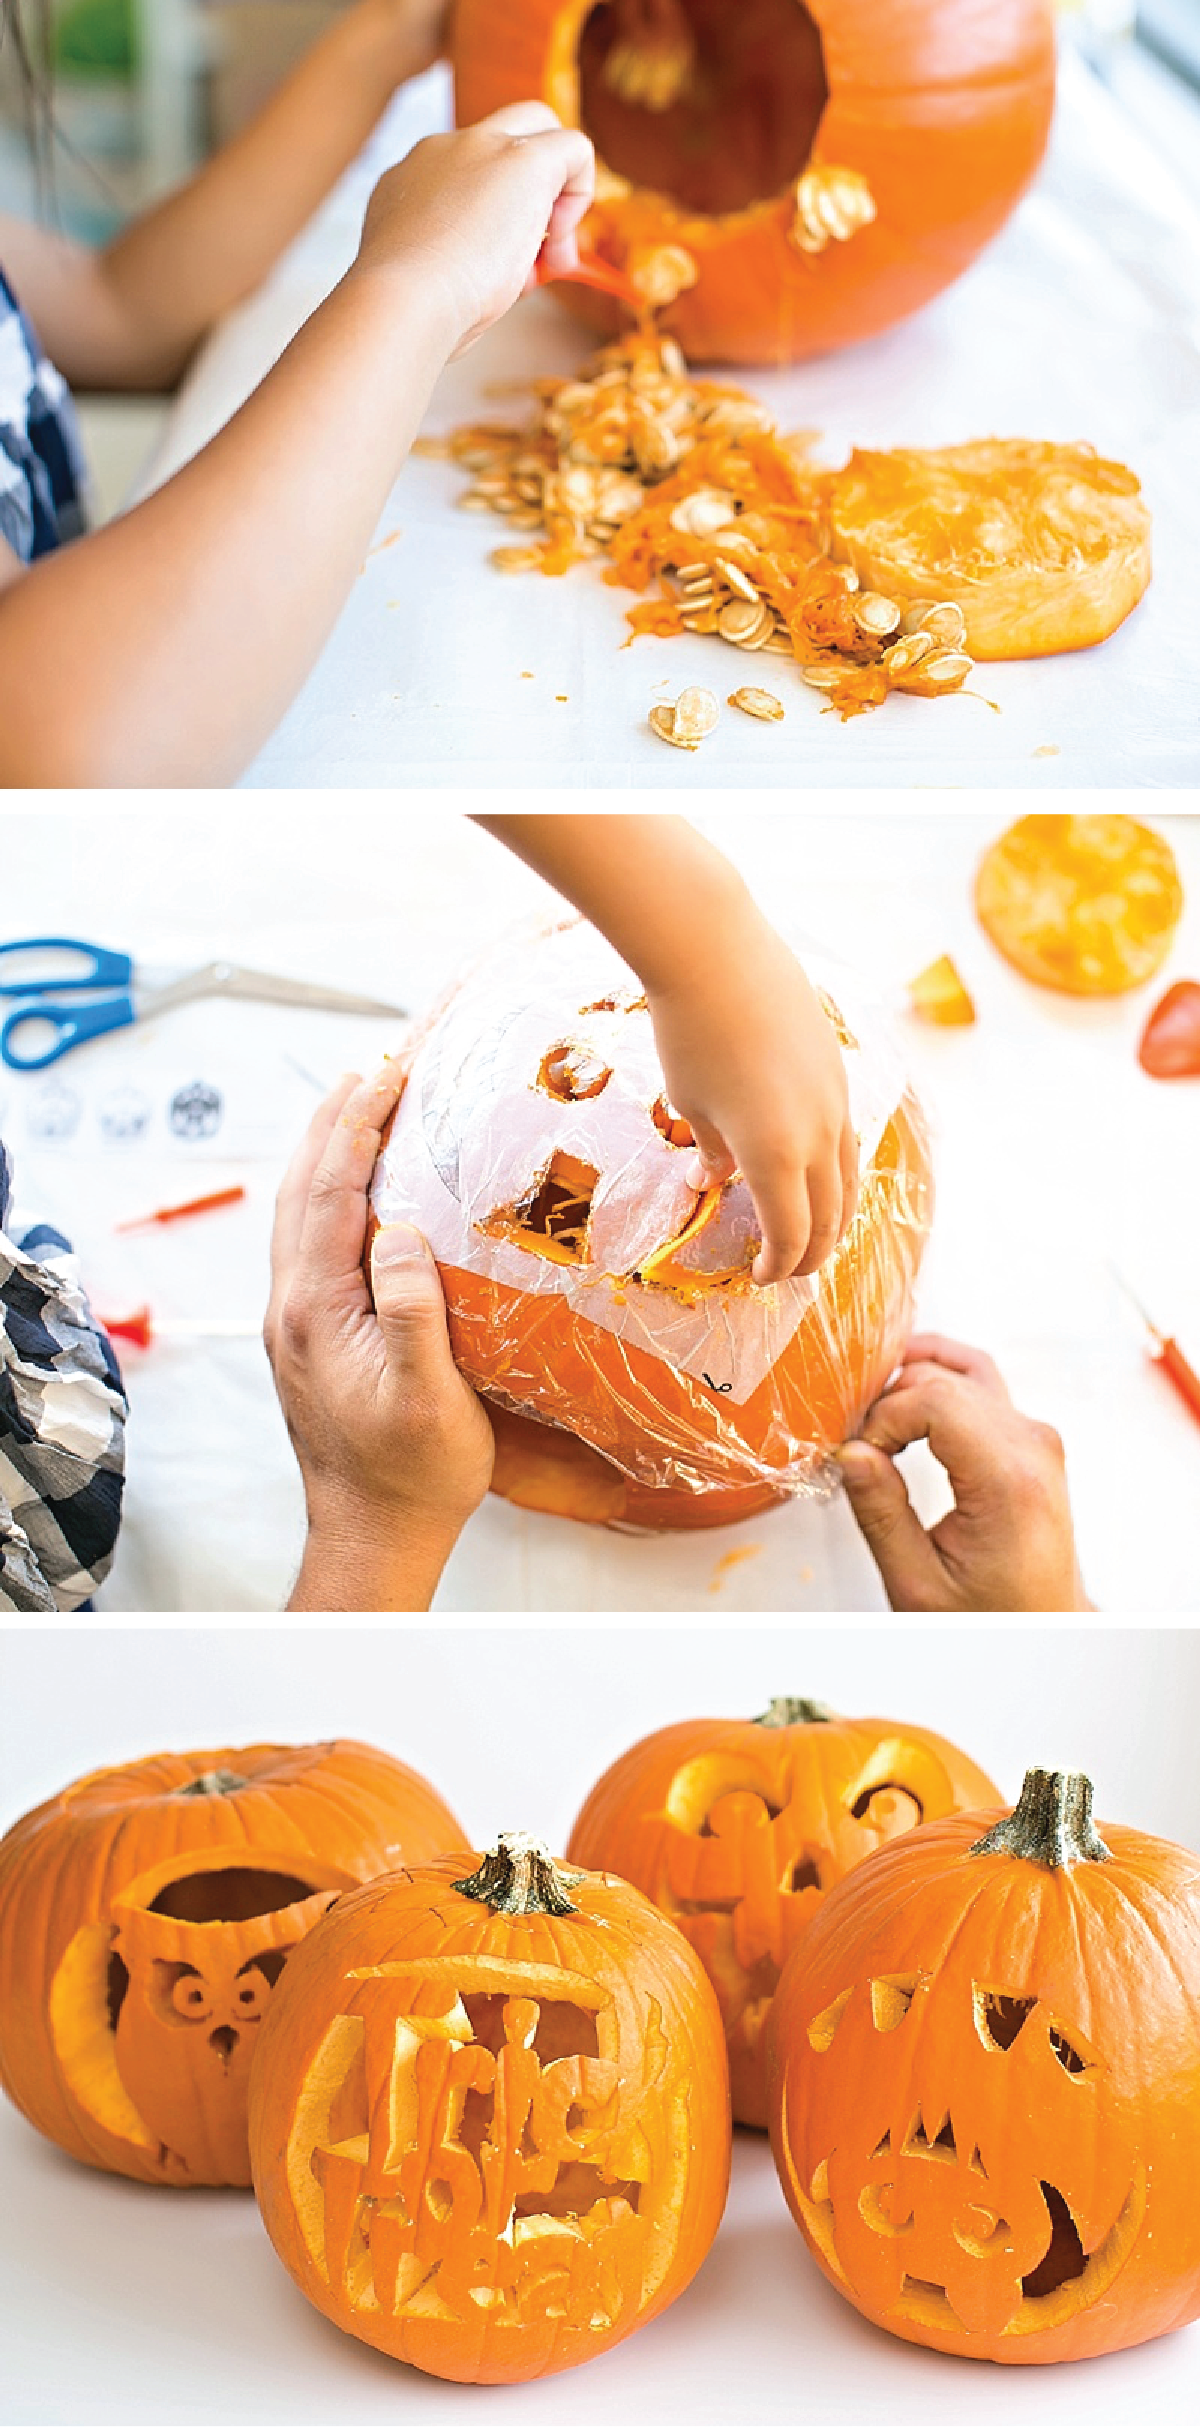 Fall wouldn't be complete without a traditional autumnal craft ...